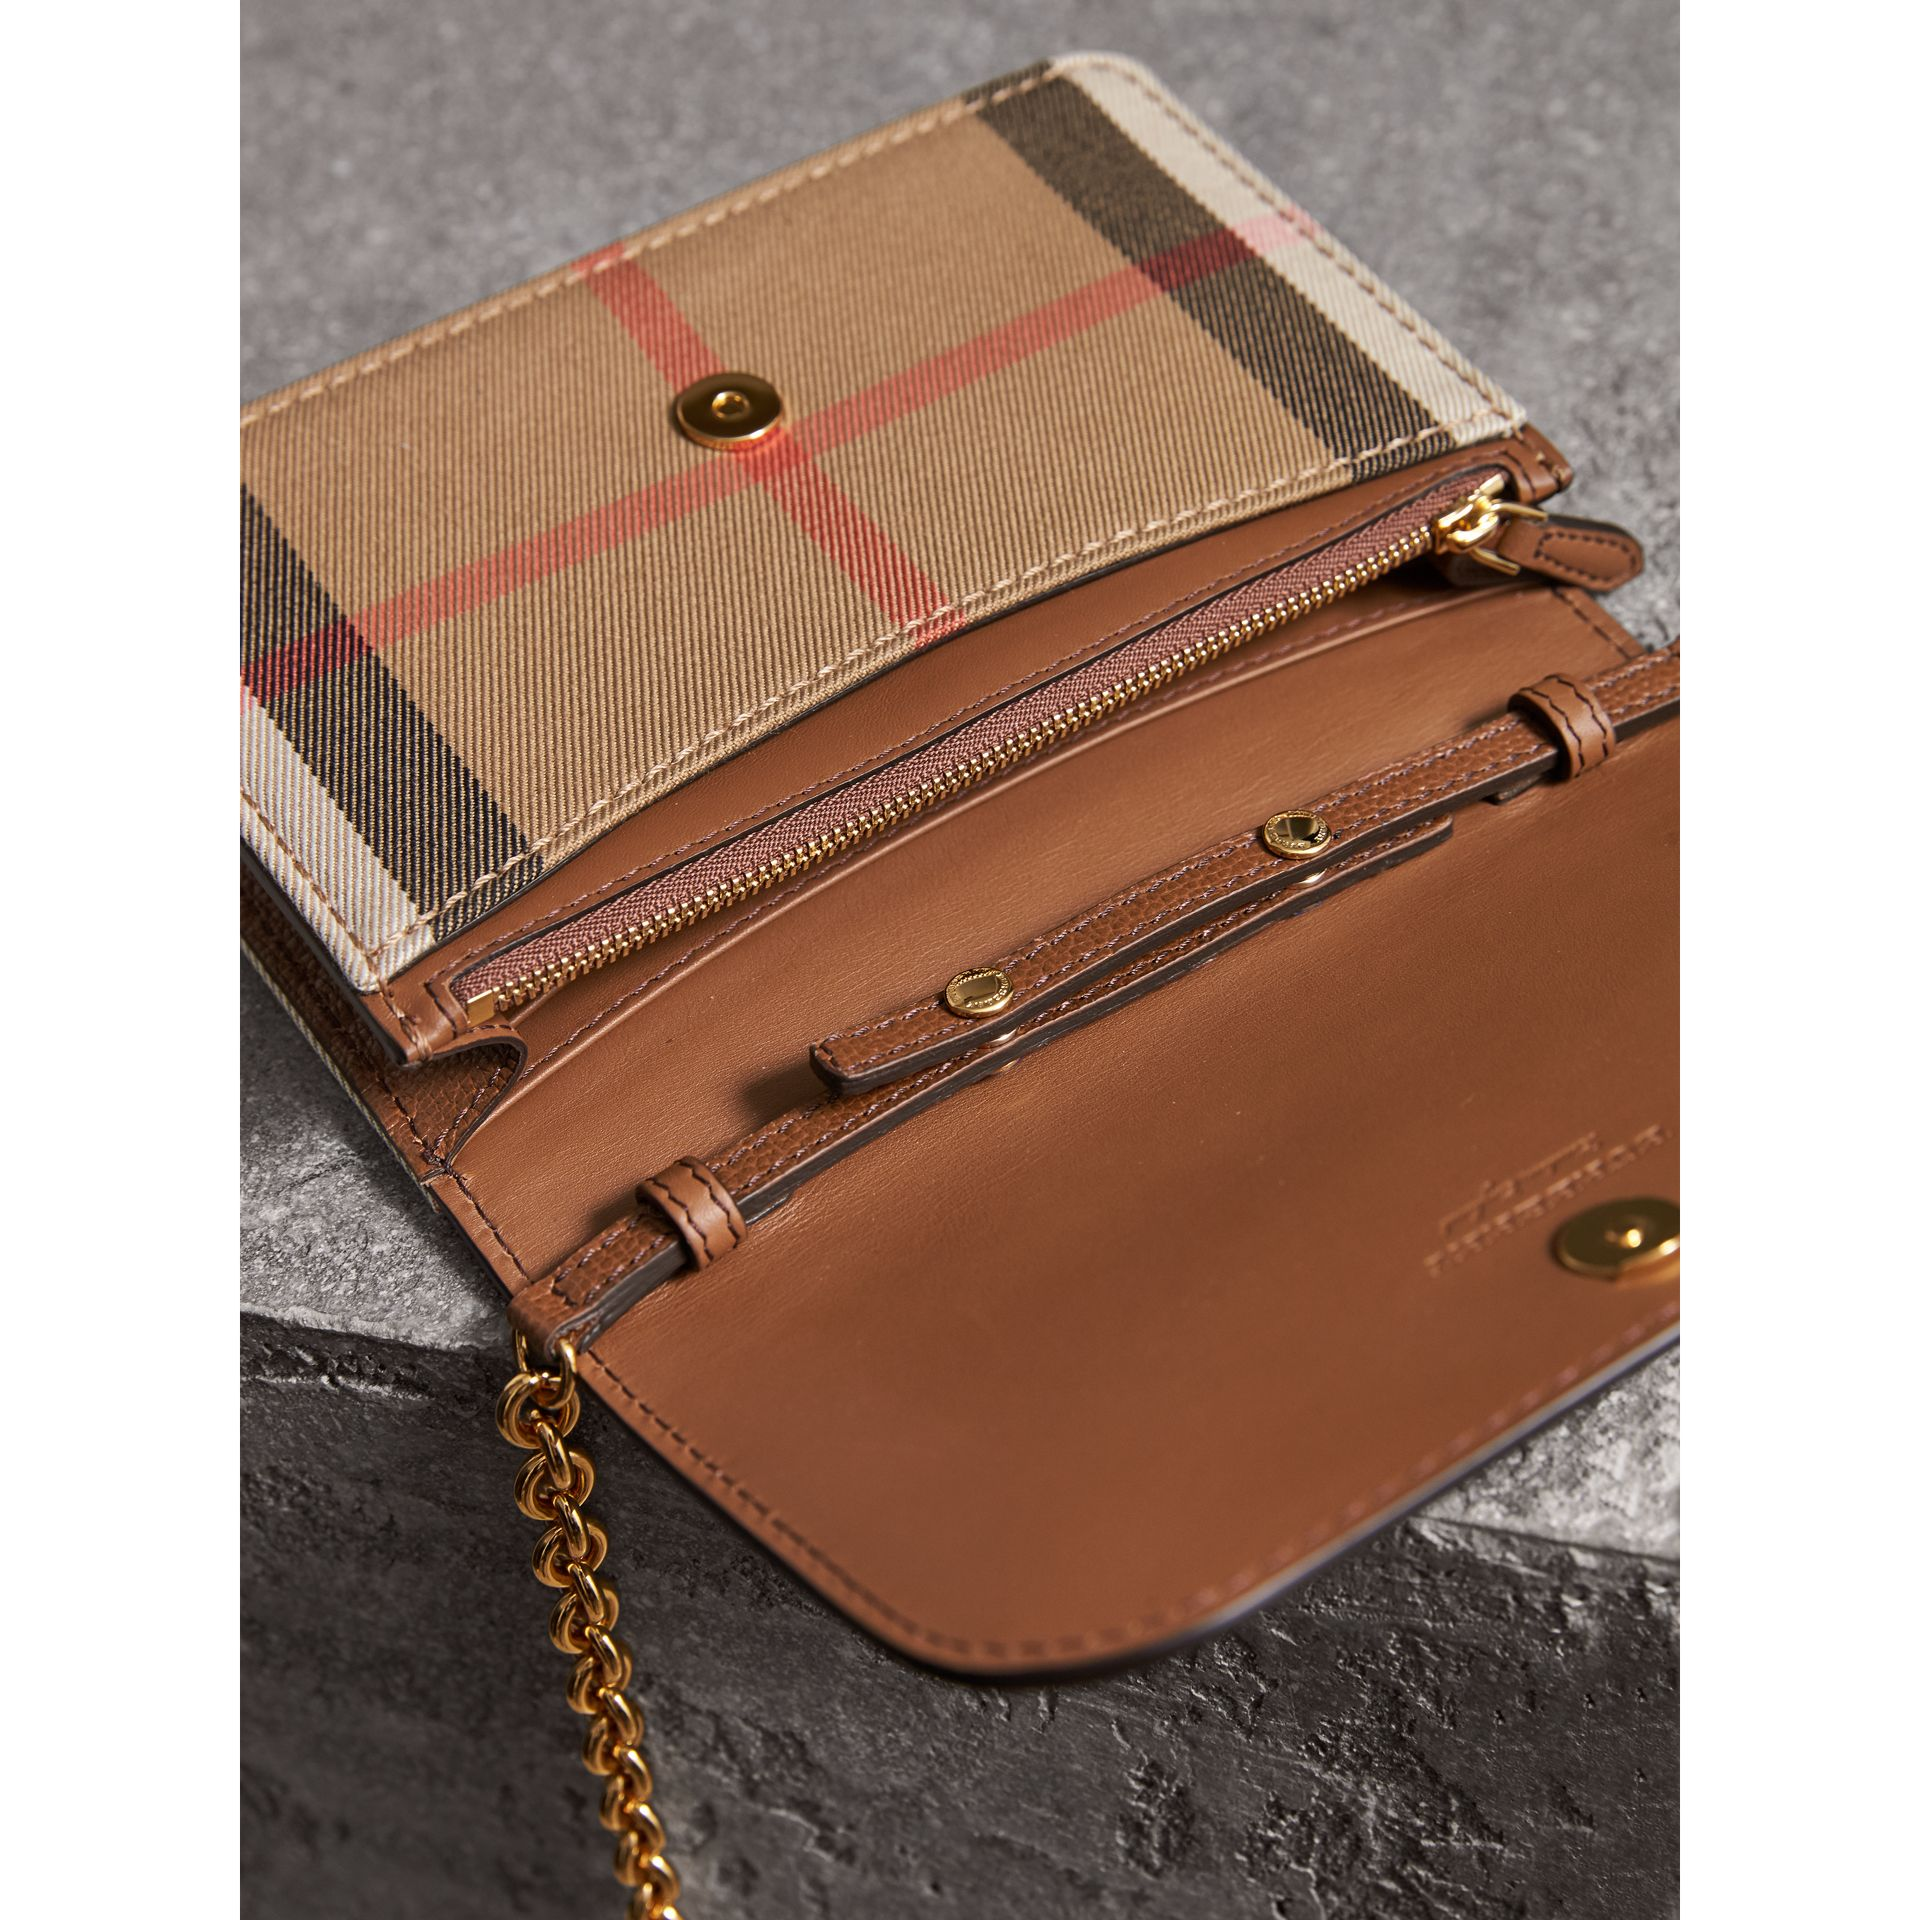 Leather and House Check Wallet with Detachable Strap in Tan - Women | Burberry United Kingdom - gallery image 5